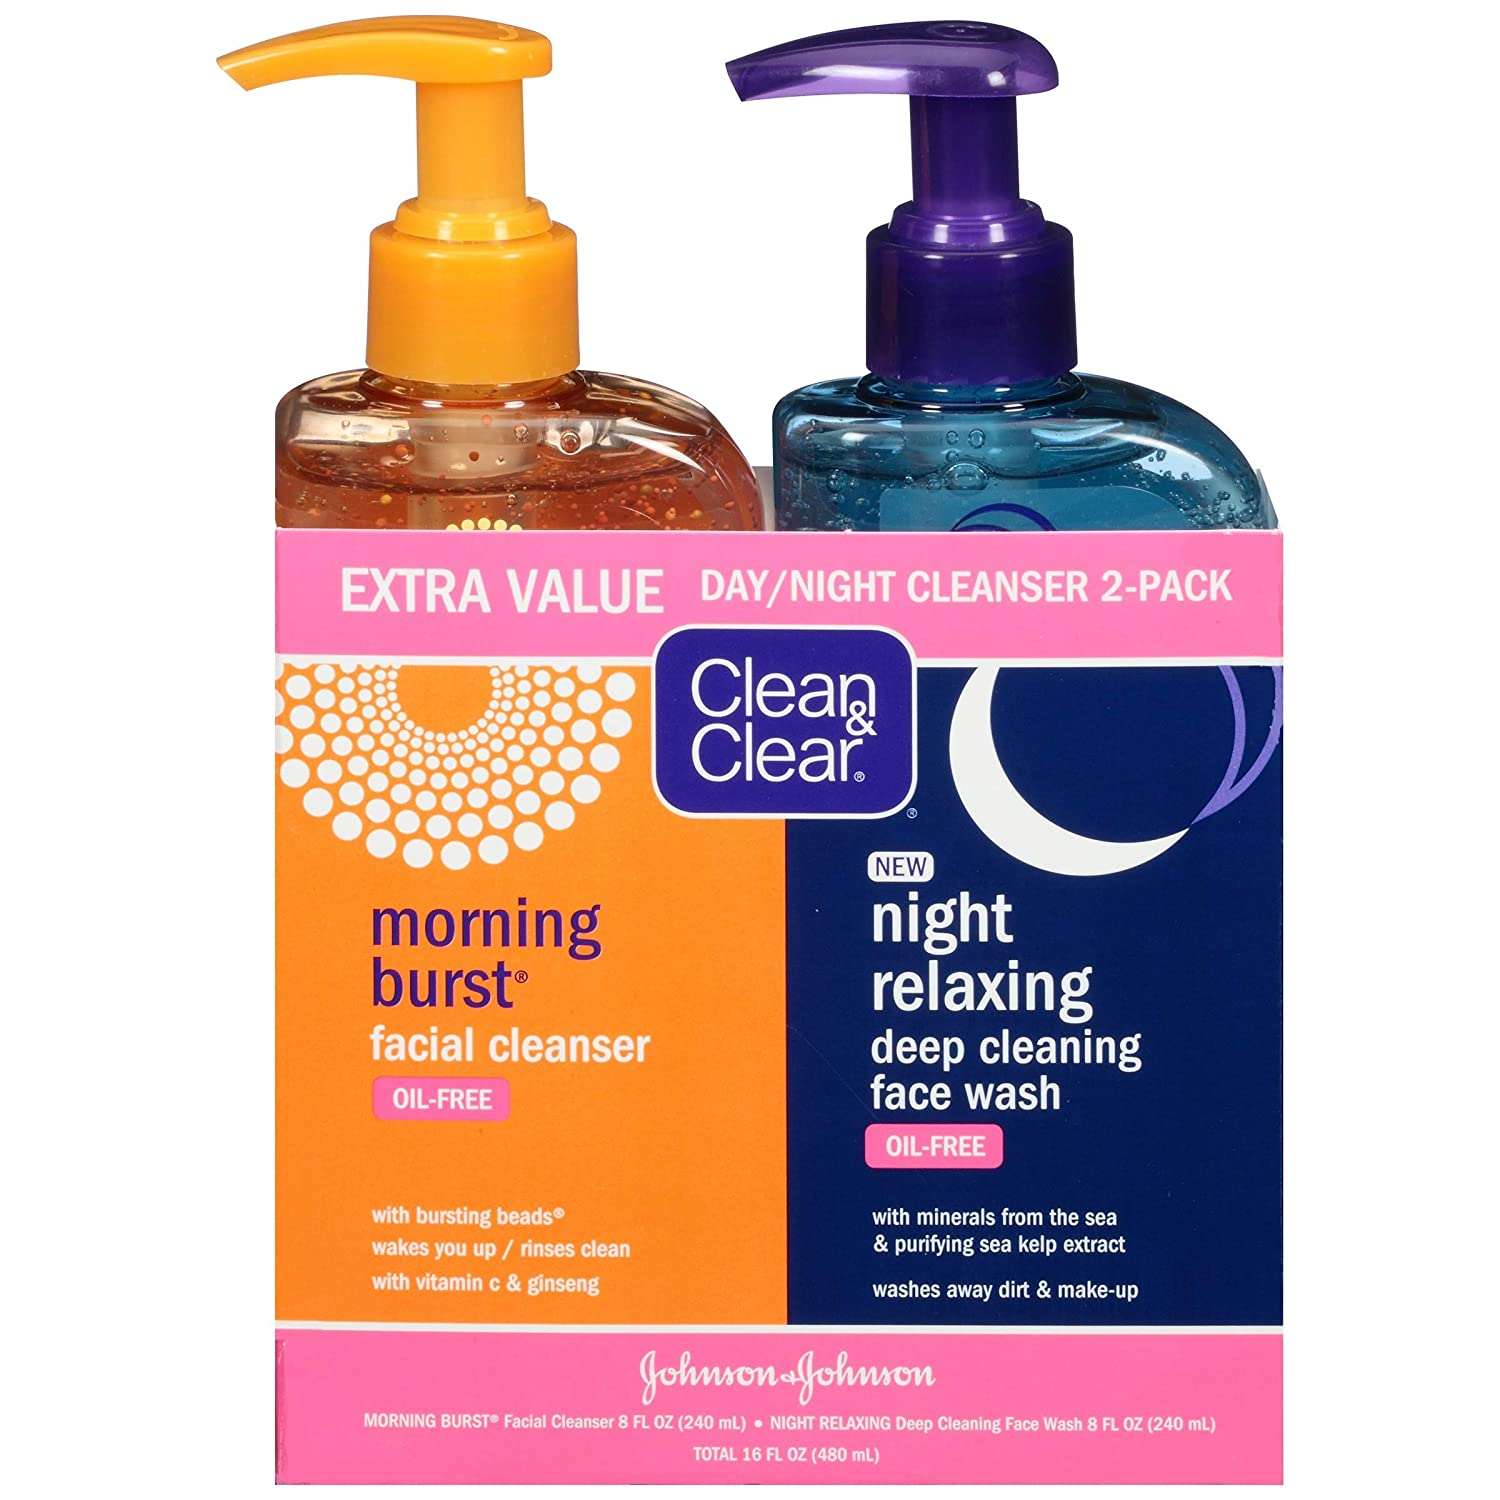 Clean   Clear 2-Pack Day and Night Face Cleanser Citrus Morning Burst Facial Cleanser with Vitamin C and Cucumber  Relaxing Night Facial Cleanser with Sea